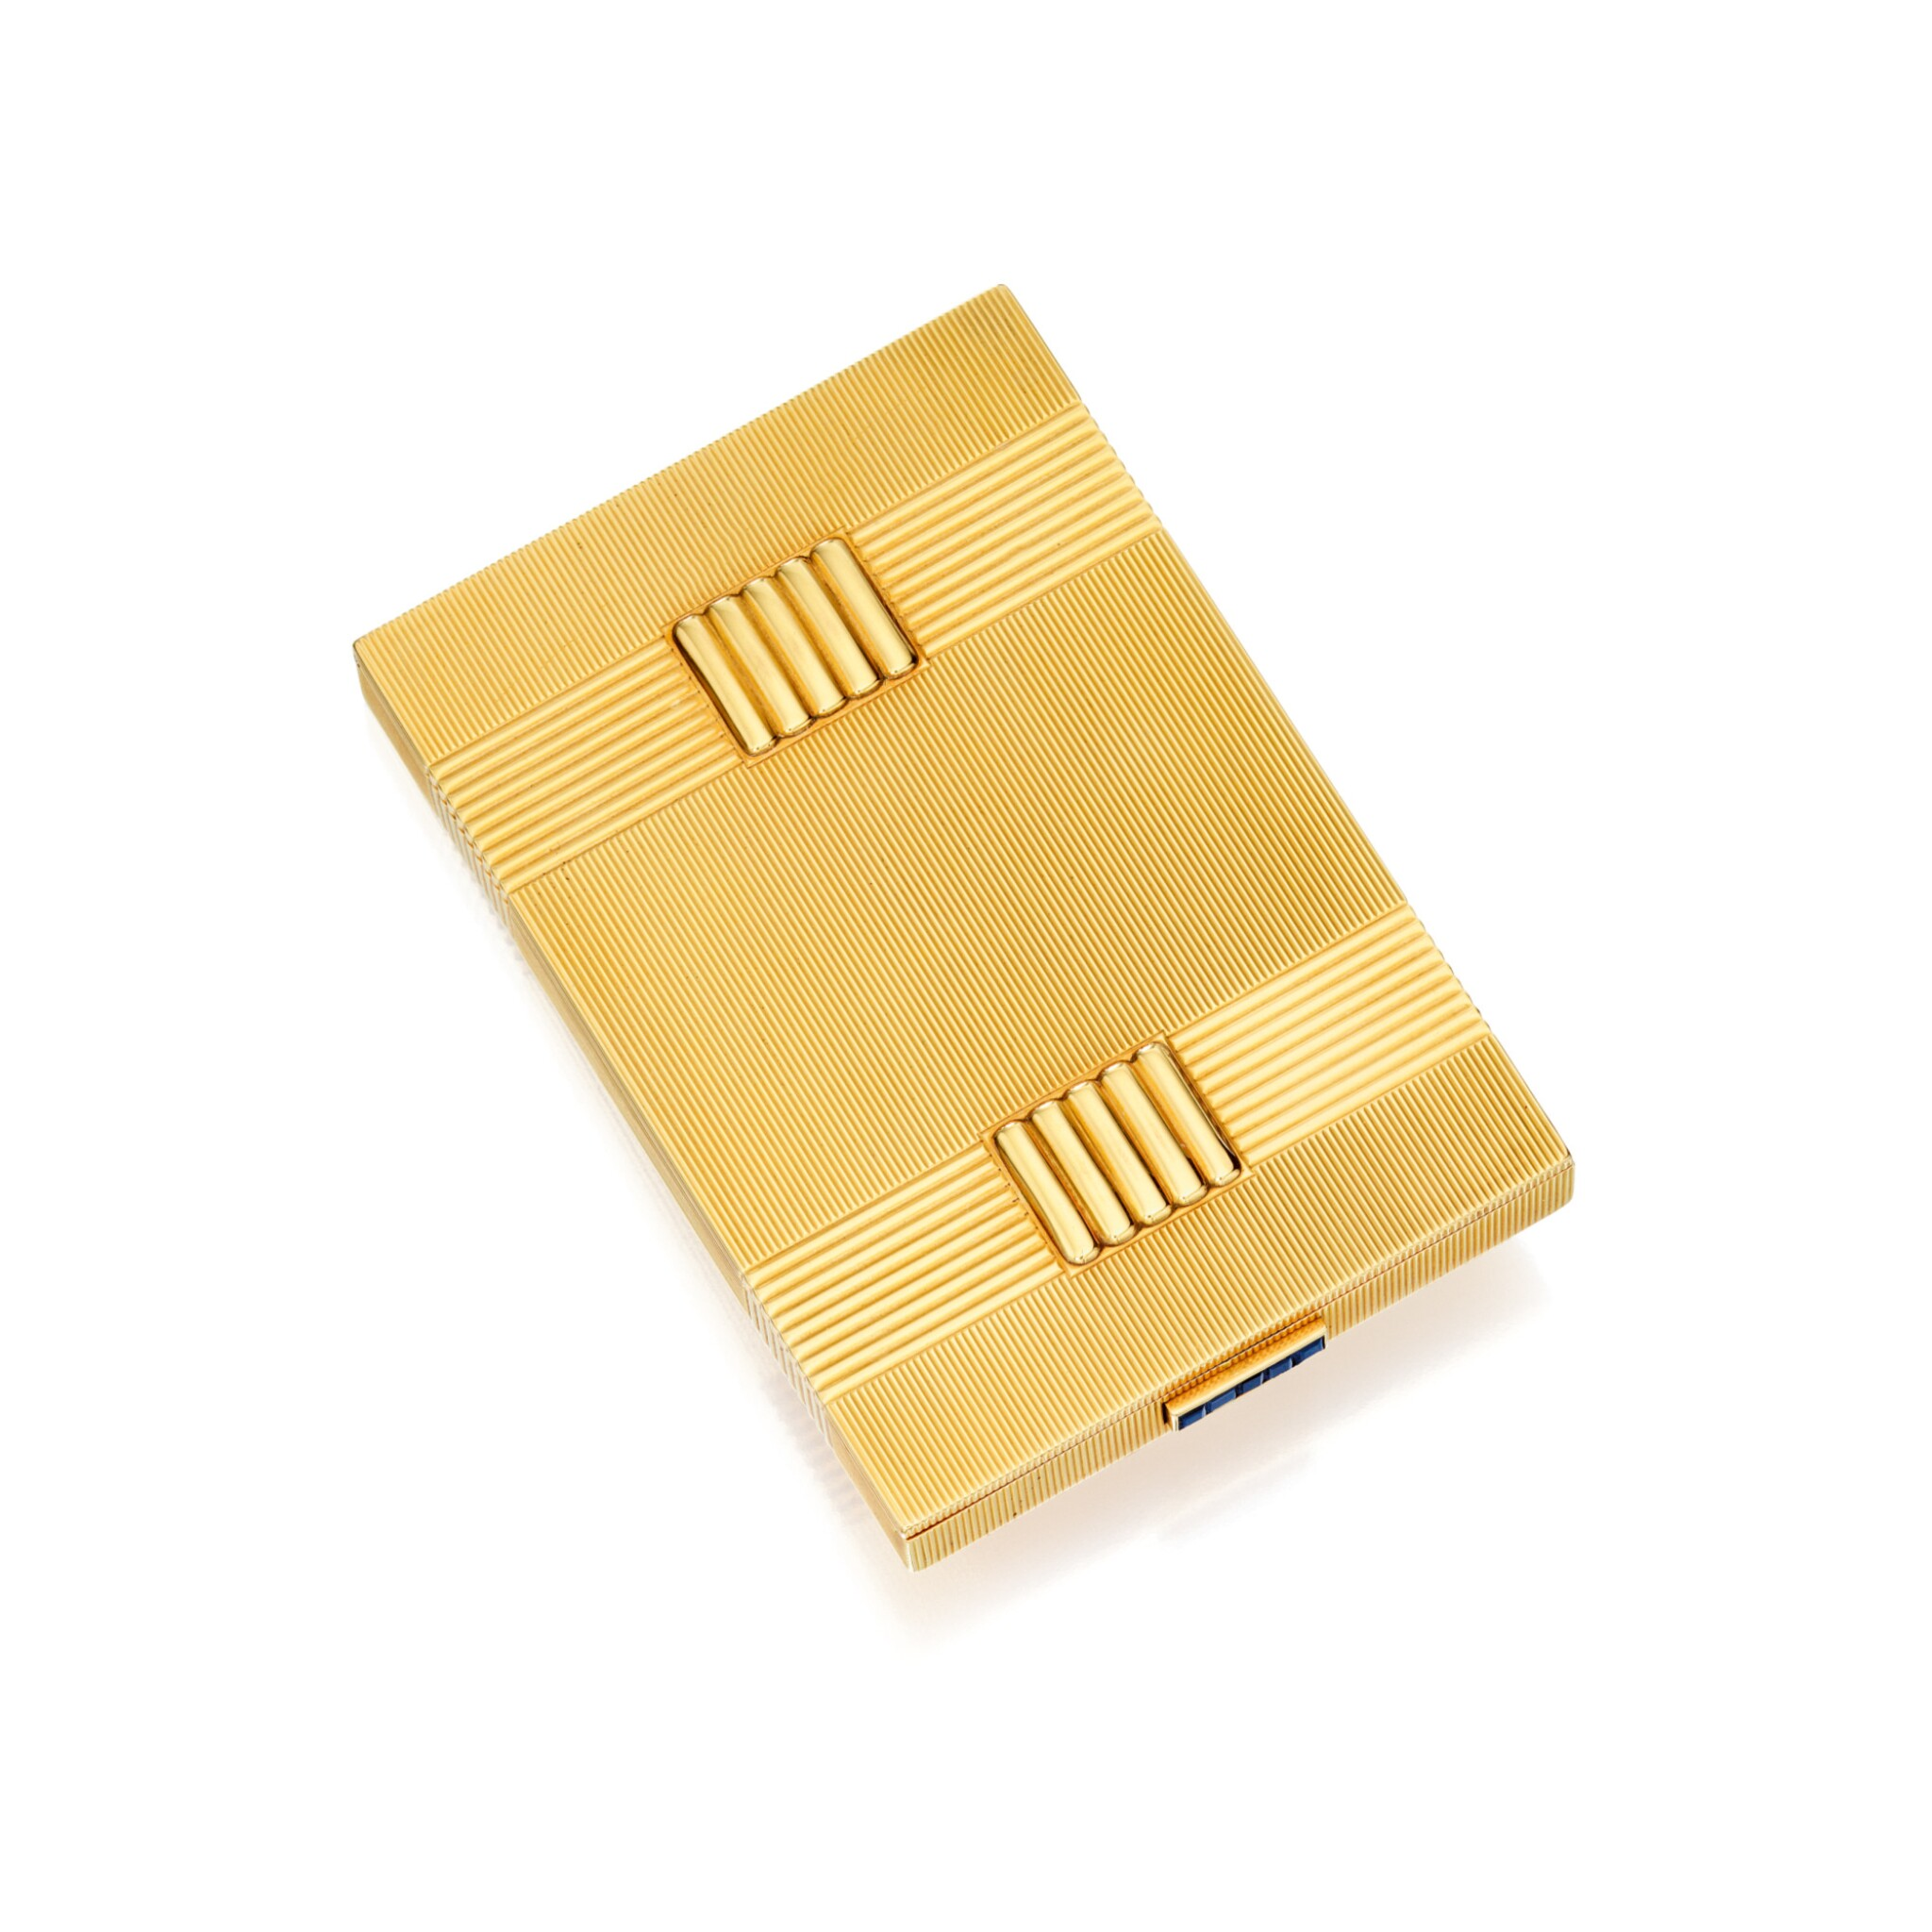 View full screen - View 1 of Lot 501. GOLD AND SAPPHIRE CIGARETTE CASE, VAN CLEEF & ARPELS, FRANCE | 黃金鑲藍寶石煙盒,梵克雅寶.